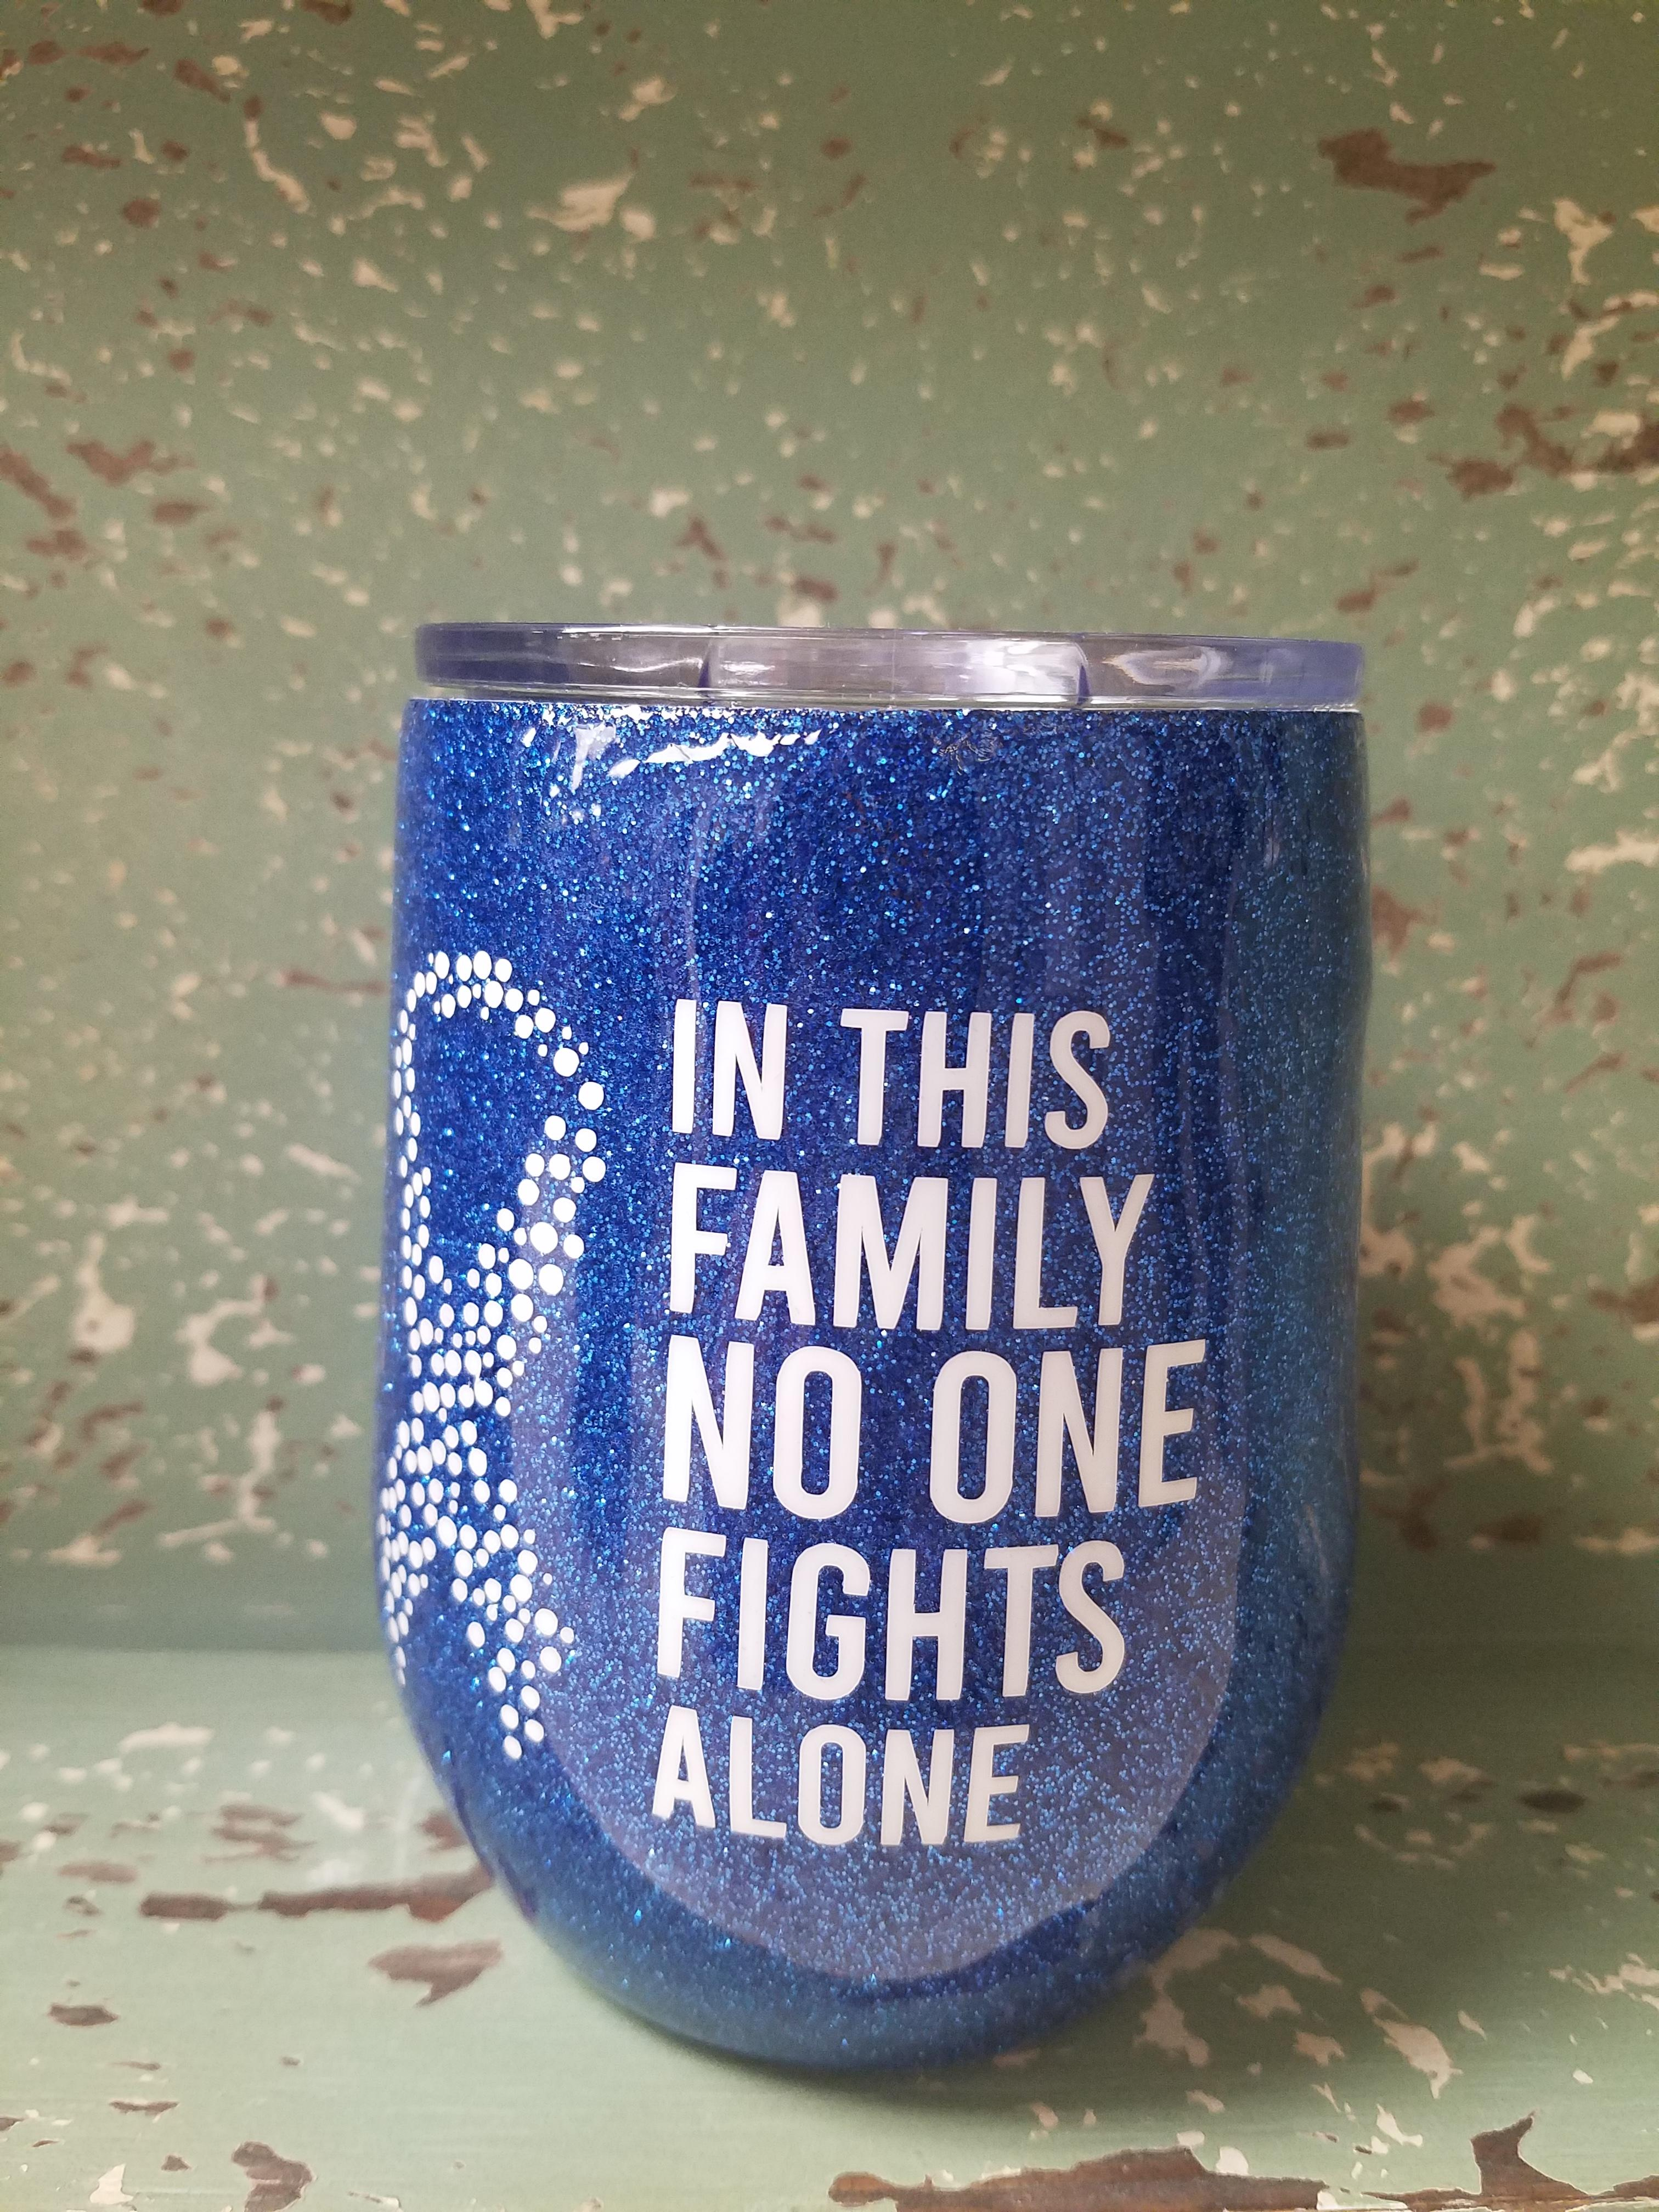 Diabetes Awareness Cups-In This Family No One Fights Alone